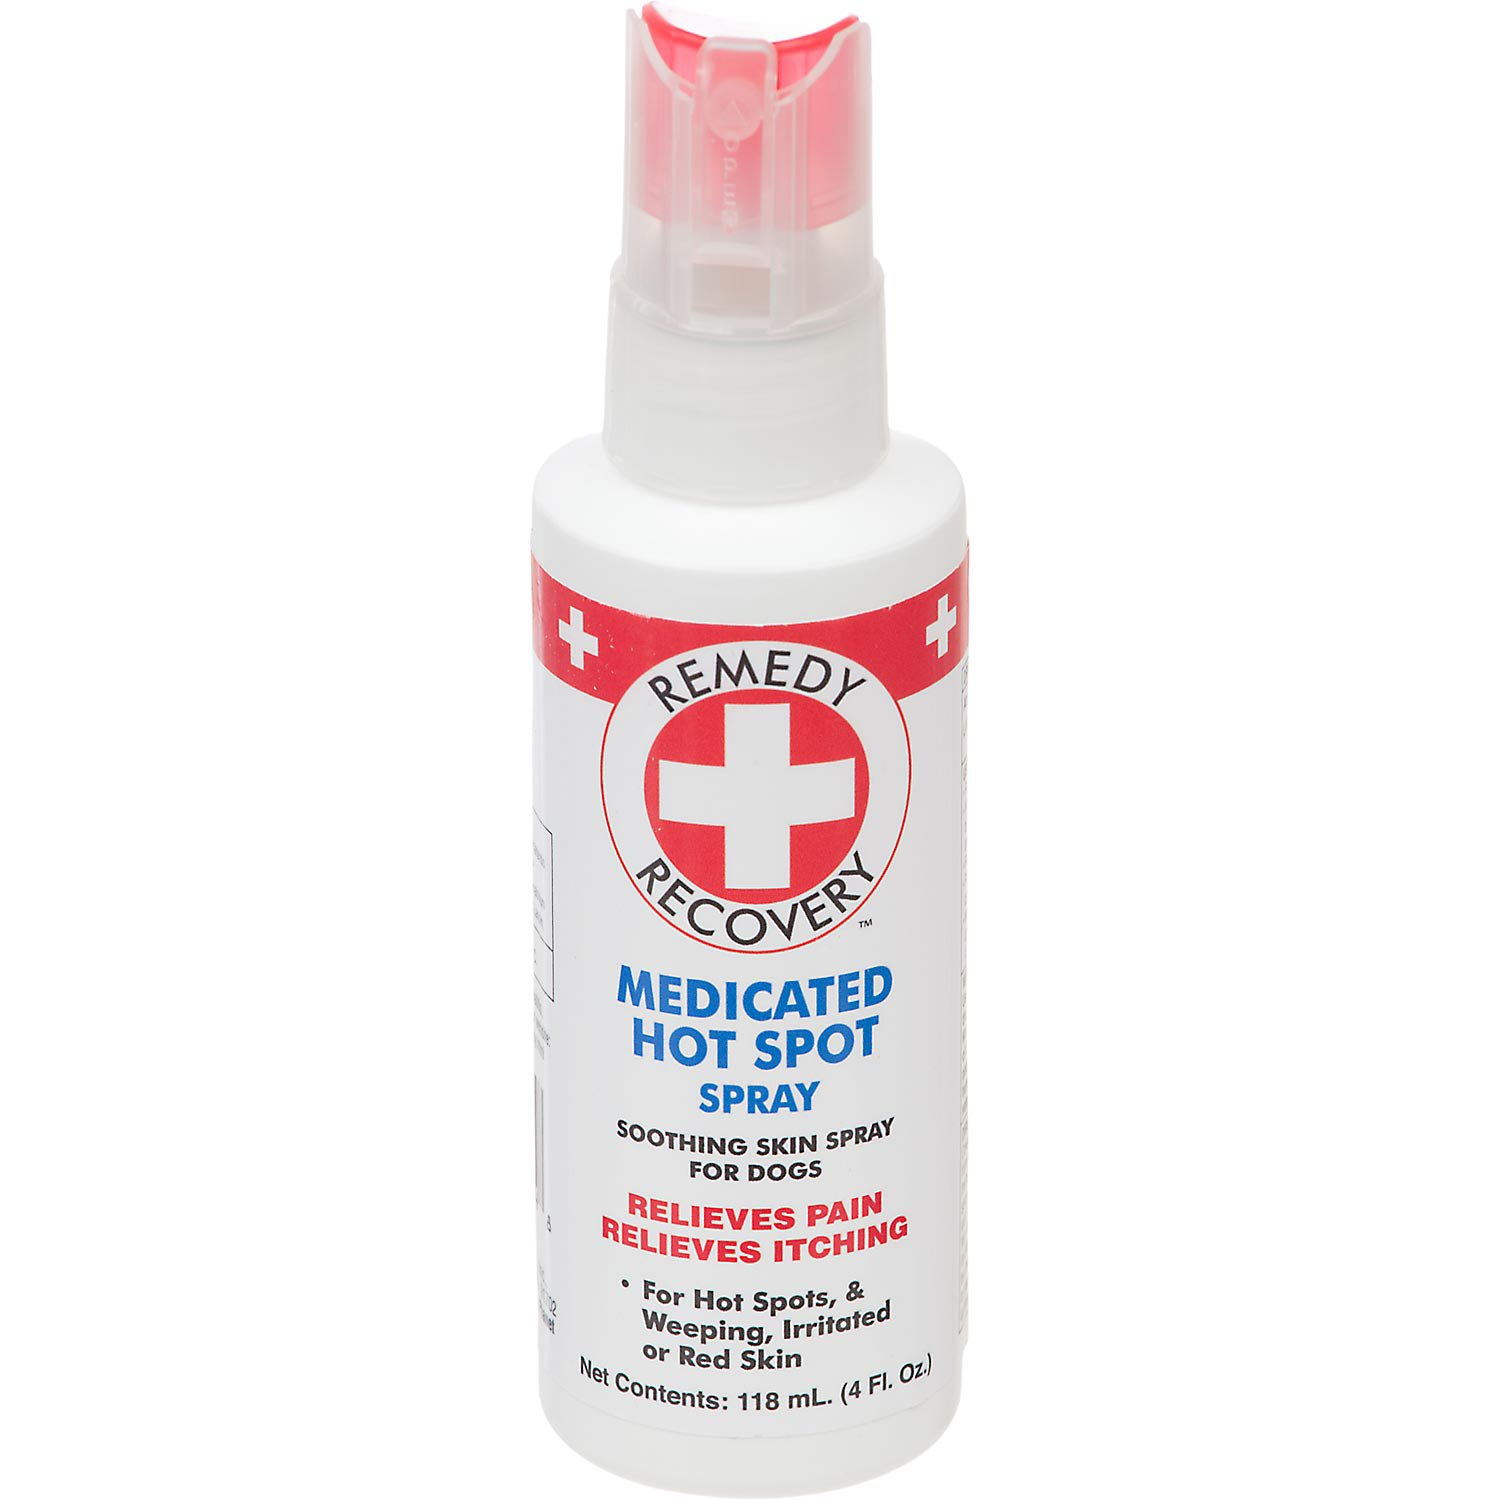 Remedy+Recovery Medicated Hot Spot Spray for Dogs